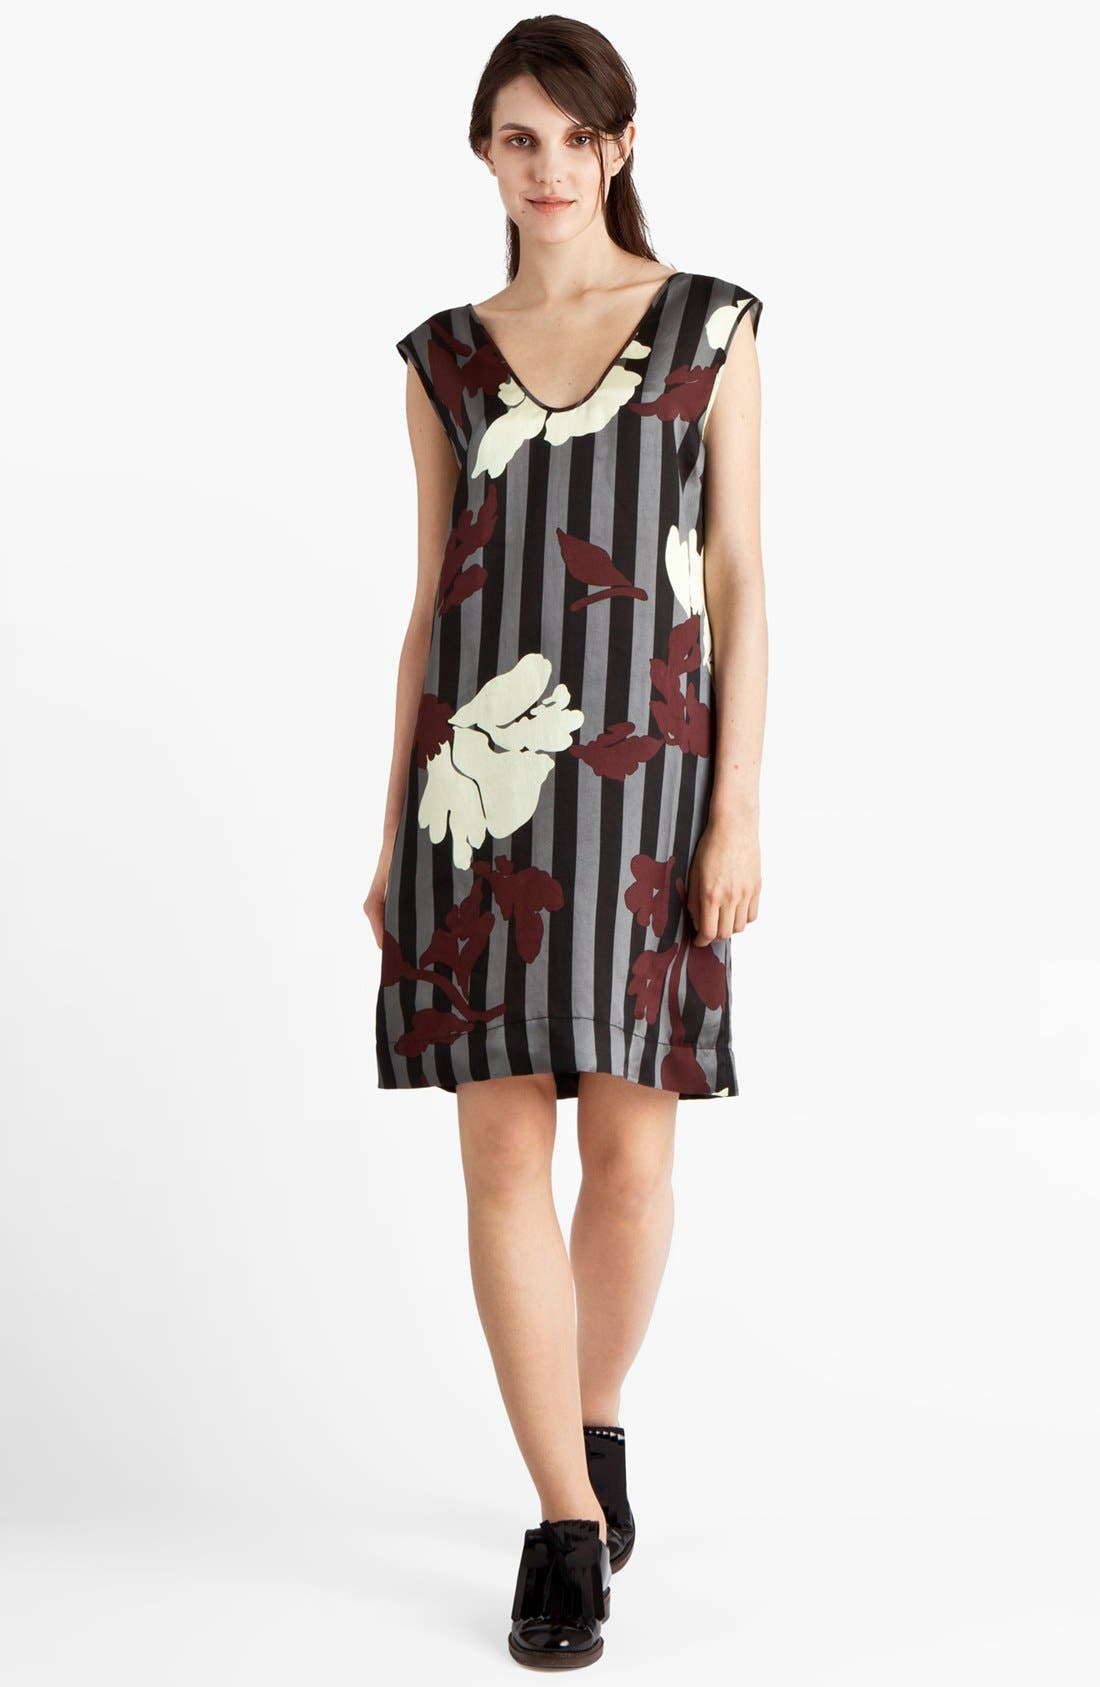 Main Image - Marni Stripe & Floral Print Twill Dress